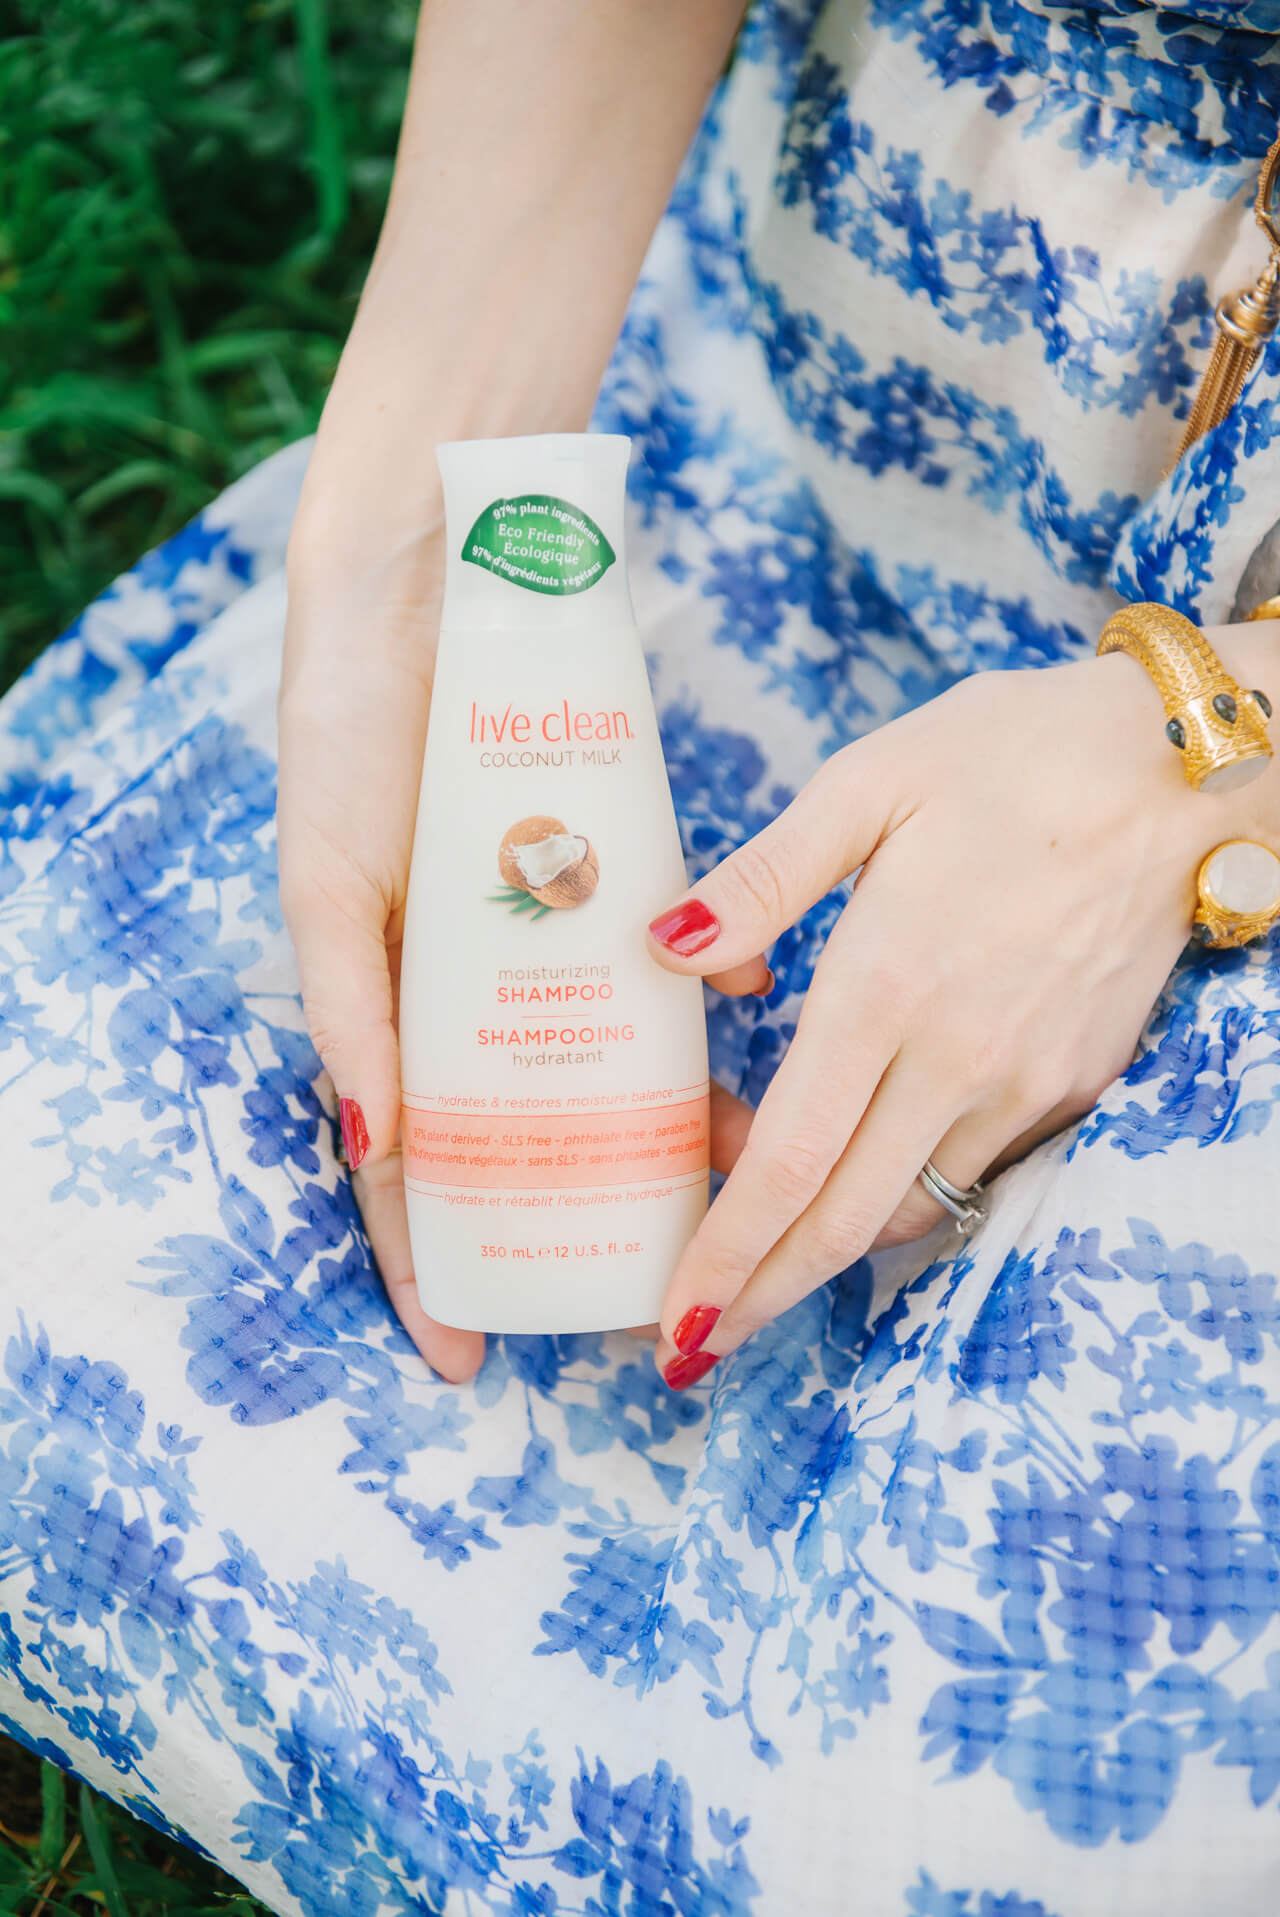 natural shampoo alternative that's affordable